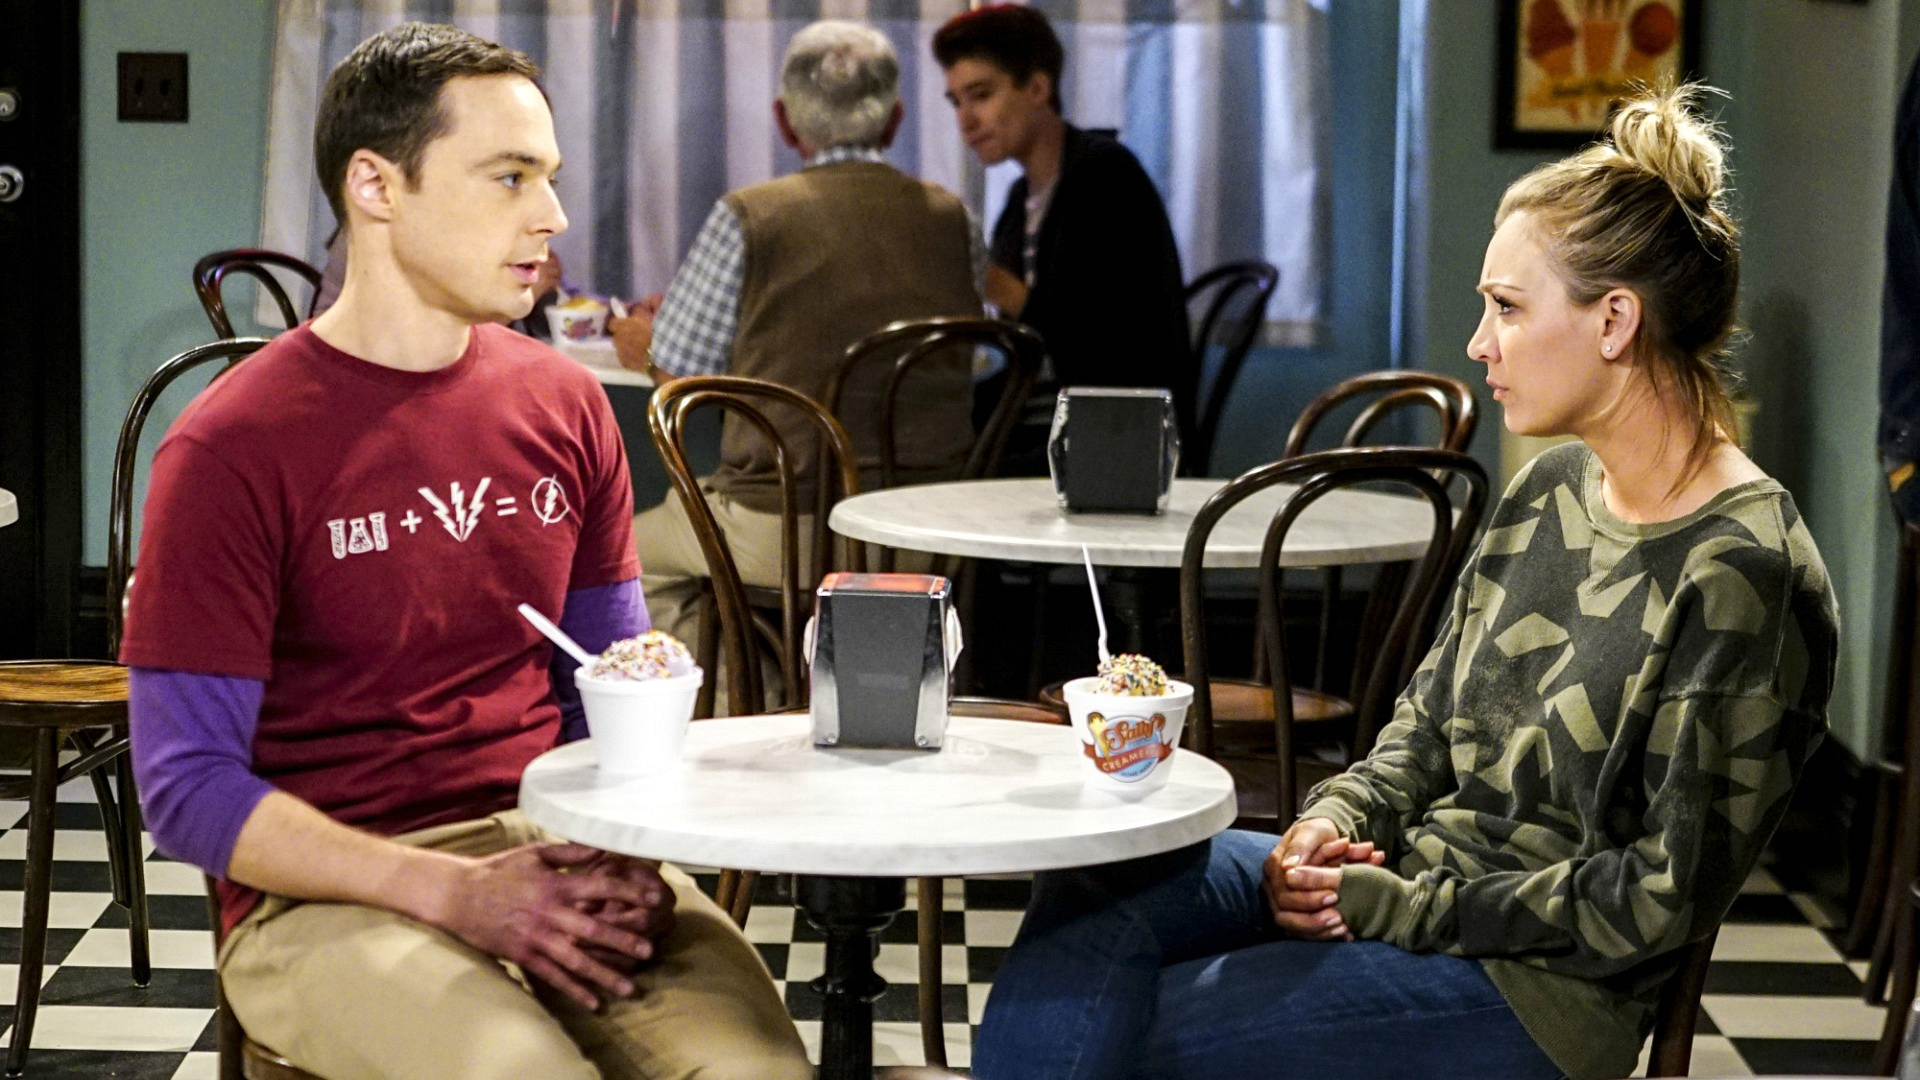 Sheldon opens up about the real reasons behind his relationship concerns.